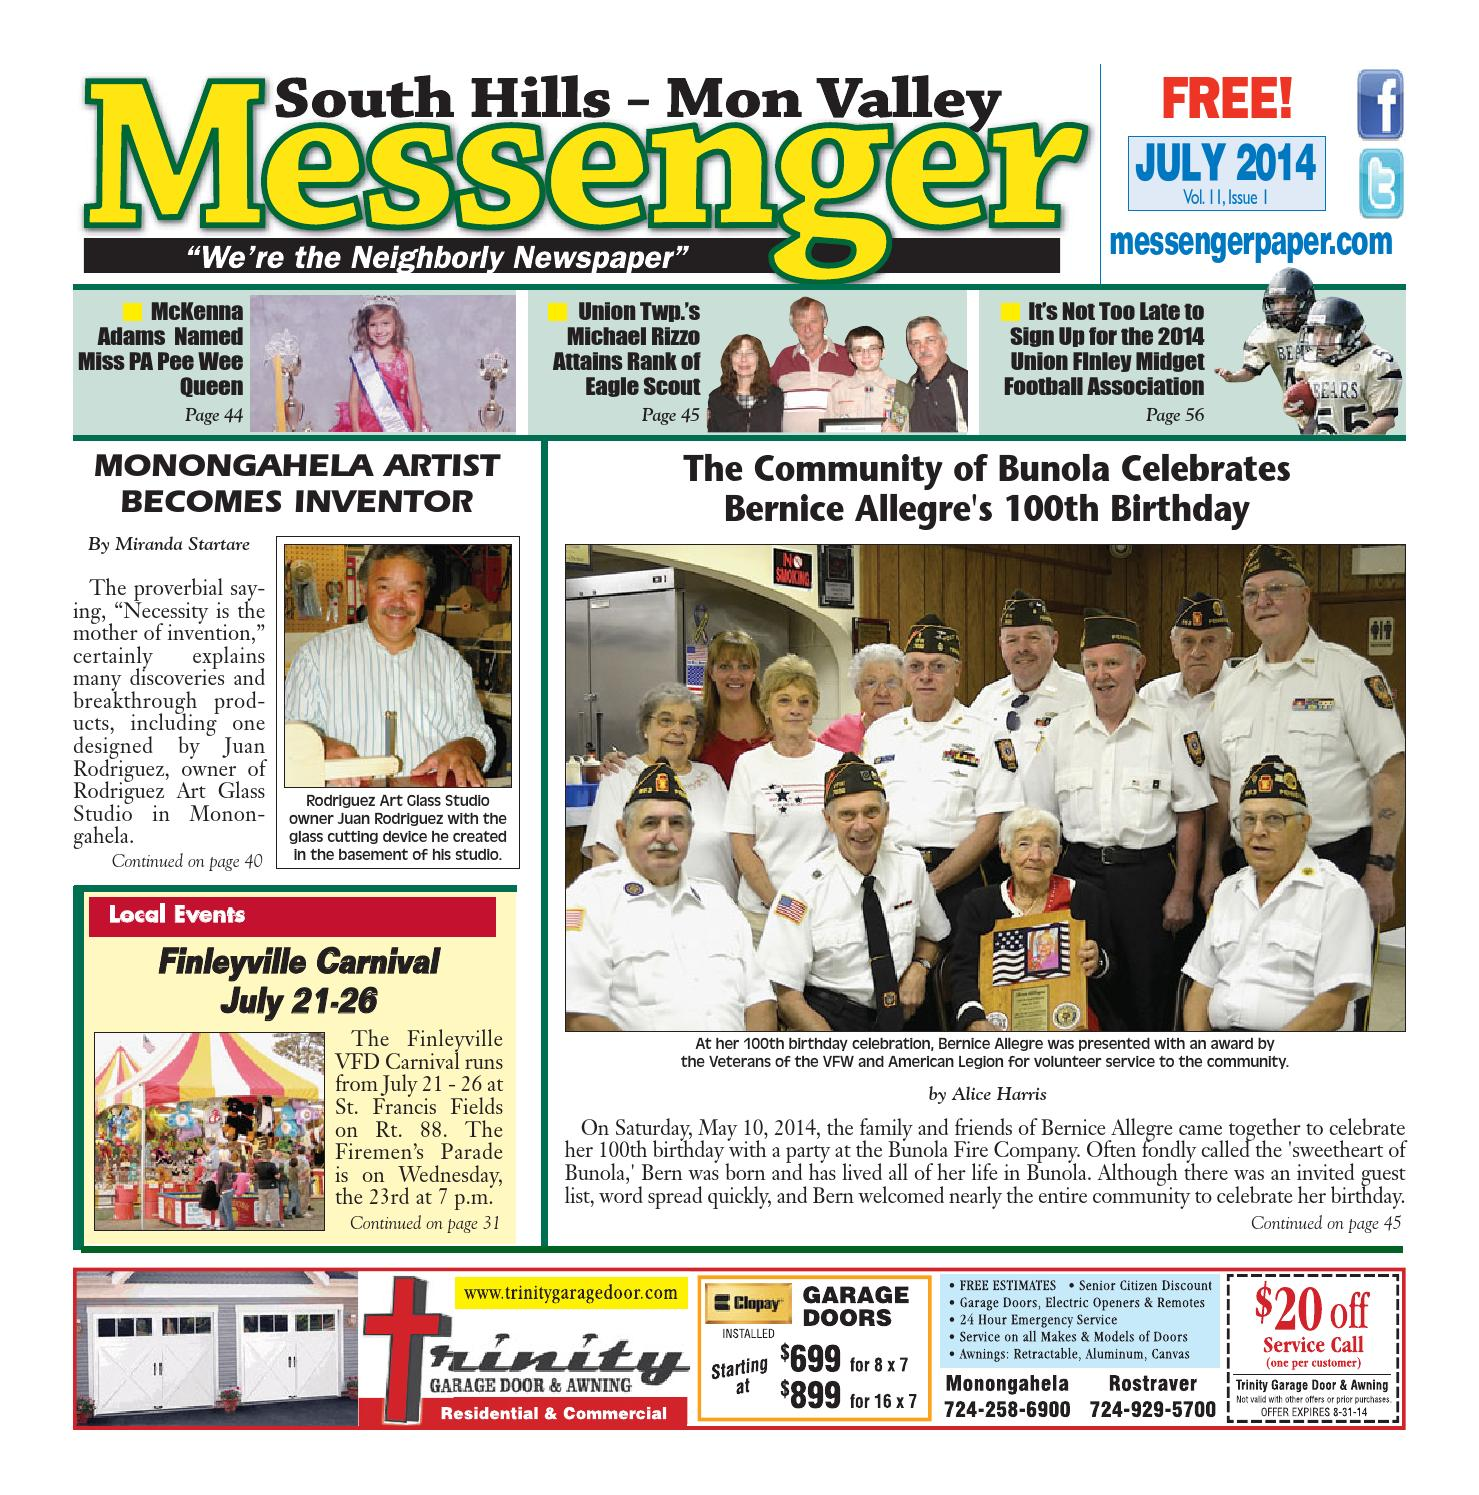 South hills mon valley messenger january 2015 by south hills mon south hills mon valley messenger july 2014 fandeluxe Choice Image